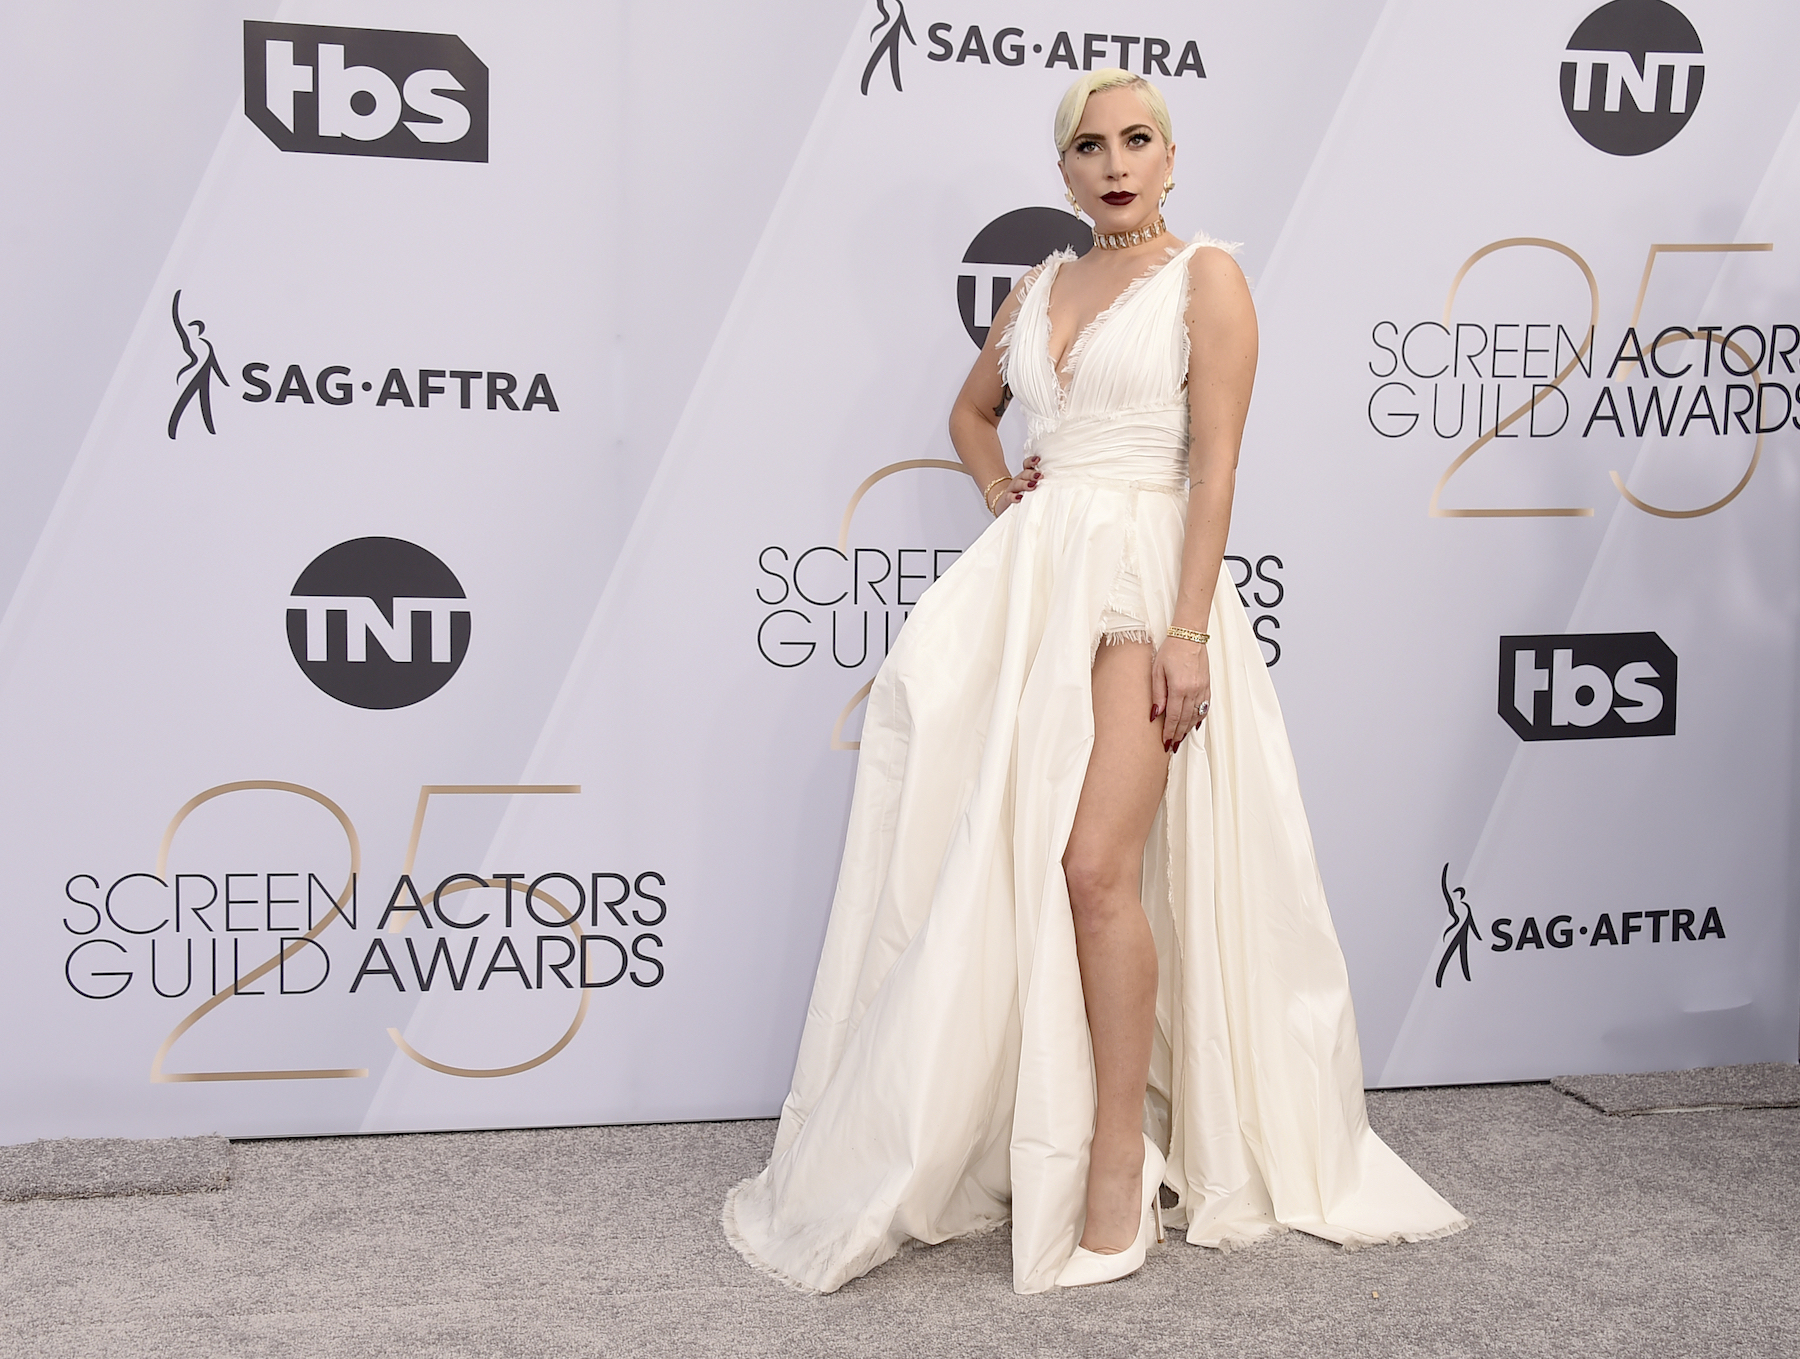 "<div class=""meta image-caption""><div class=""origin-logo origin-image ap""><span>AP</span></div><span class=""caption-text"">Lady Gaga arrives at the 25th annual Screen Actors Guild Awards at the Shrine Auditorium & Expo Hall on Sunday, Jan. 27, 2019, in Los Angeles. (Jordan Strauss/Invision/AP)</span></div>"